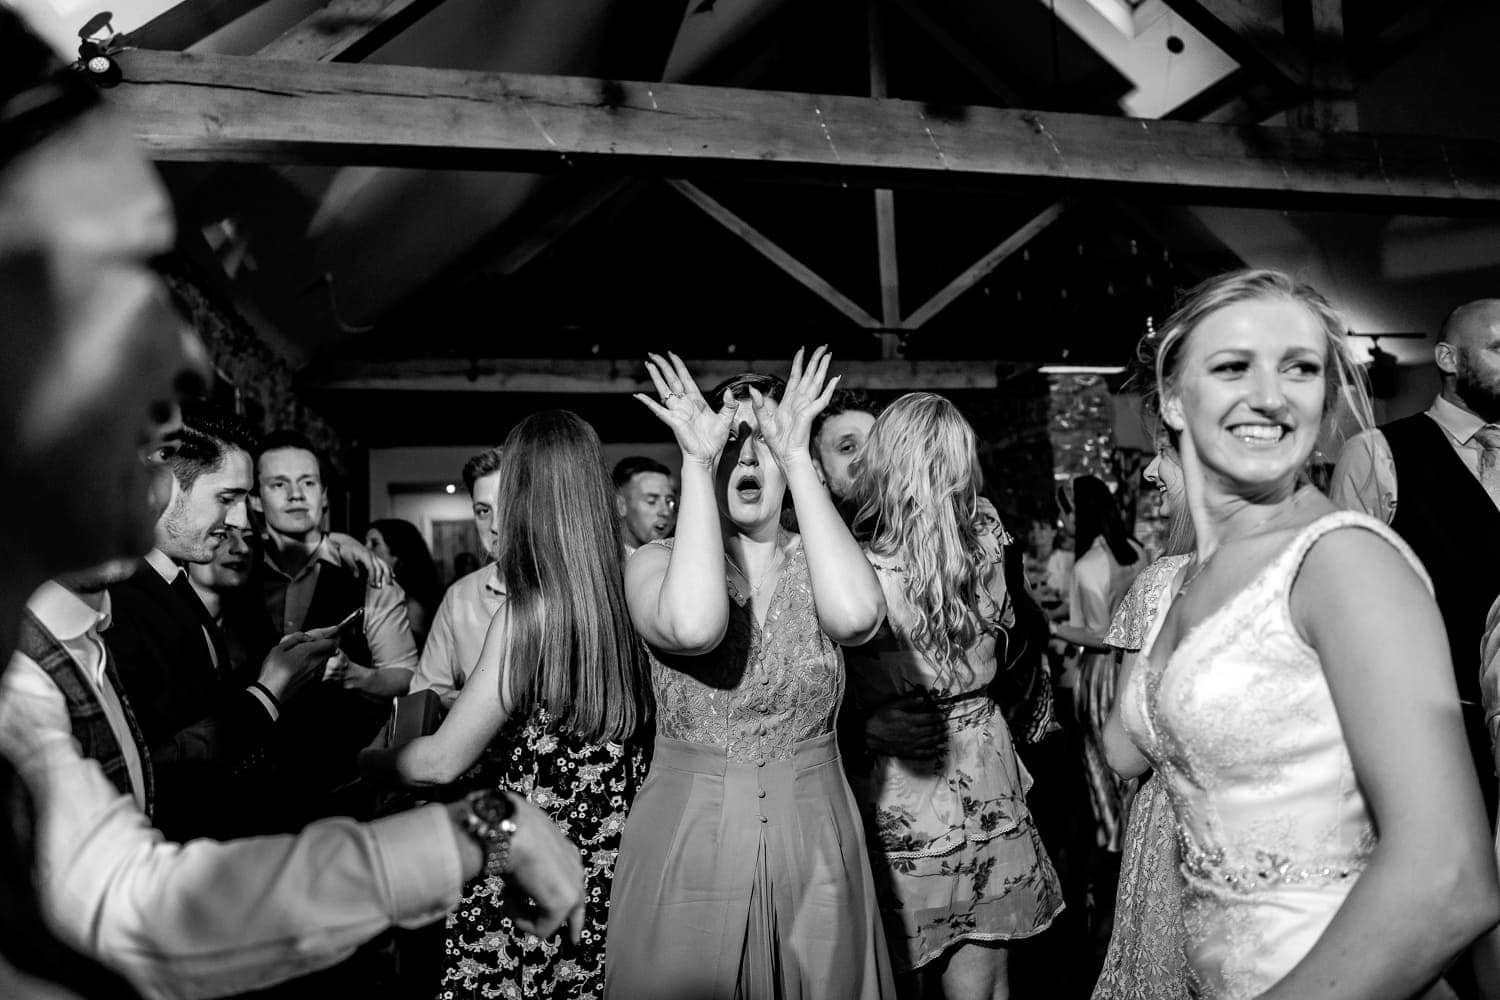 Dancing at The Old Stables Wedding venue